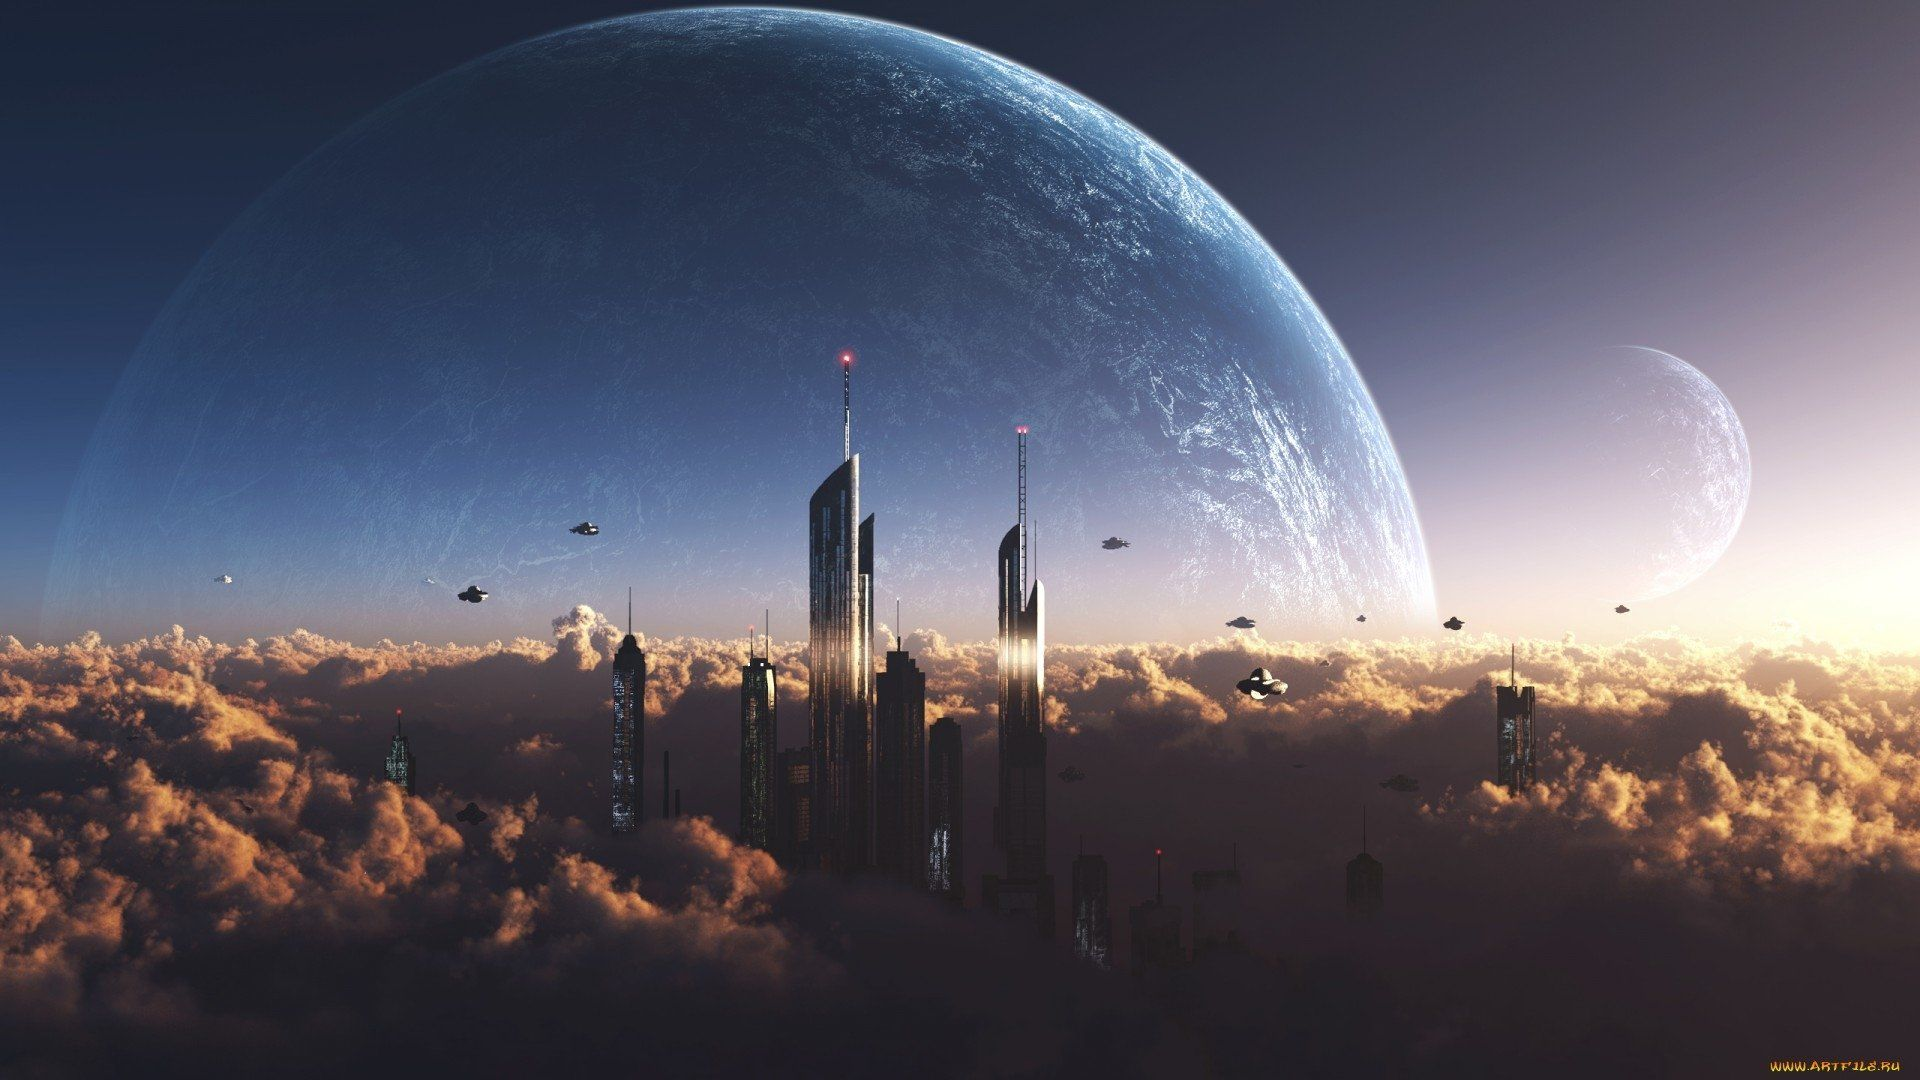 1920x1080 City Wallpaper Background Image View Download Comment And Rate Wallpaper Abyss In 2020 Sci Fi City Sci Fi Wallpaper Background Images